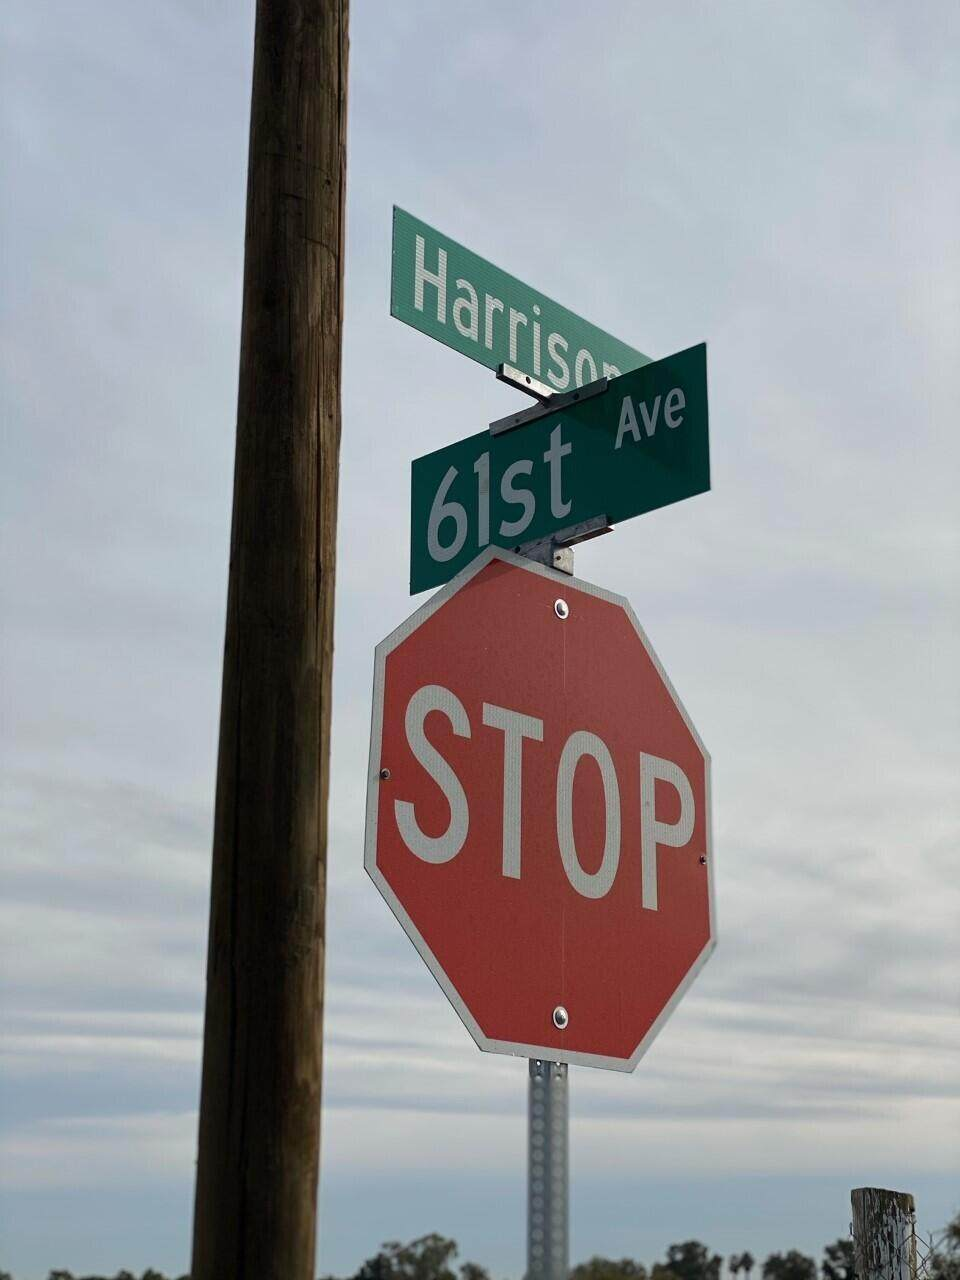 61st Harrison - Photo 1